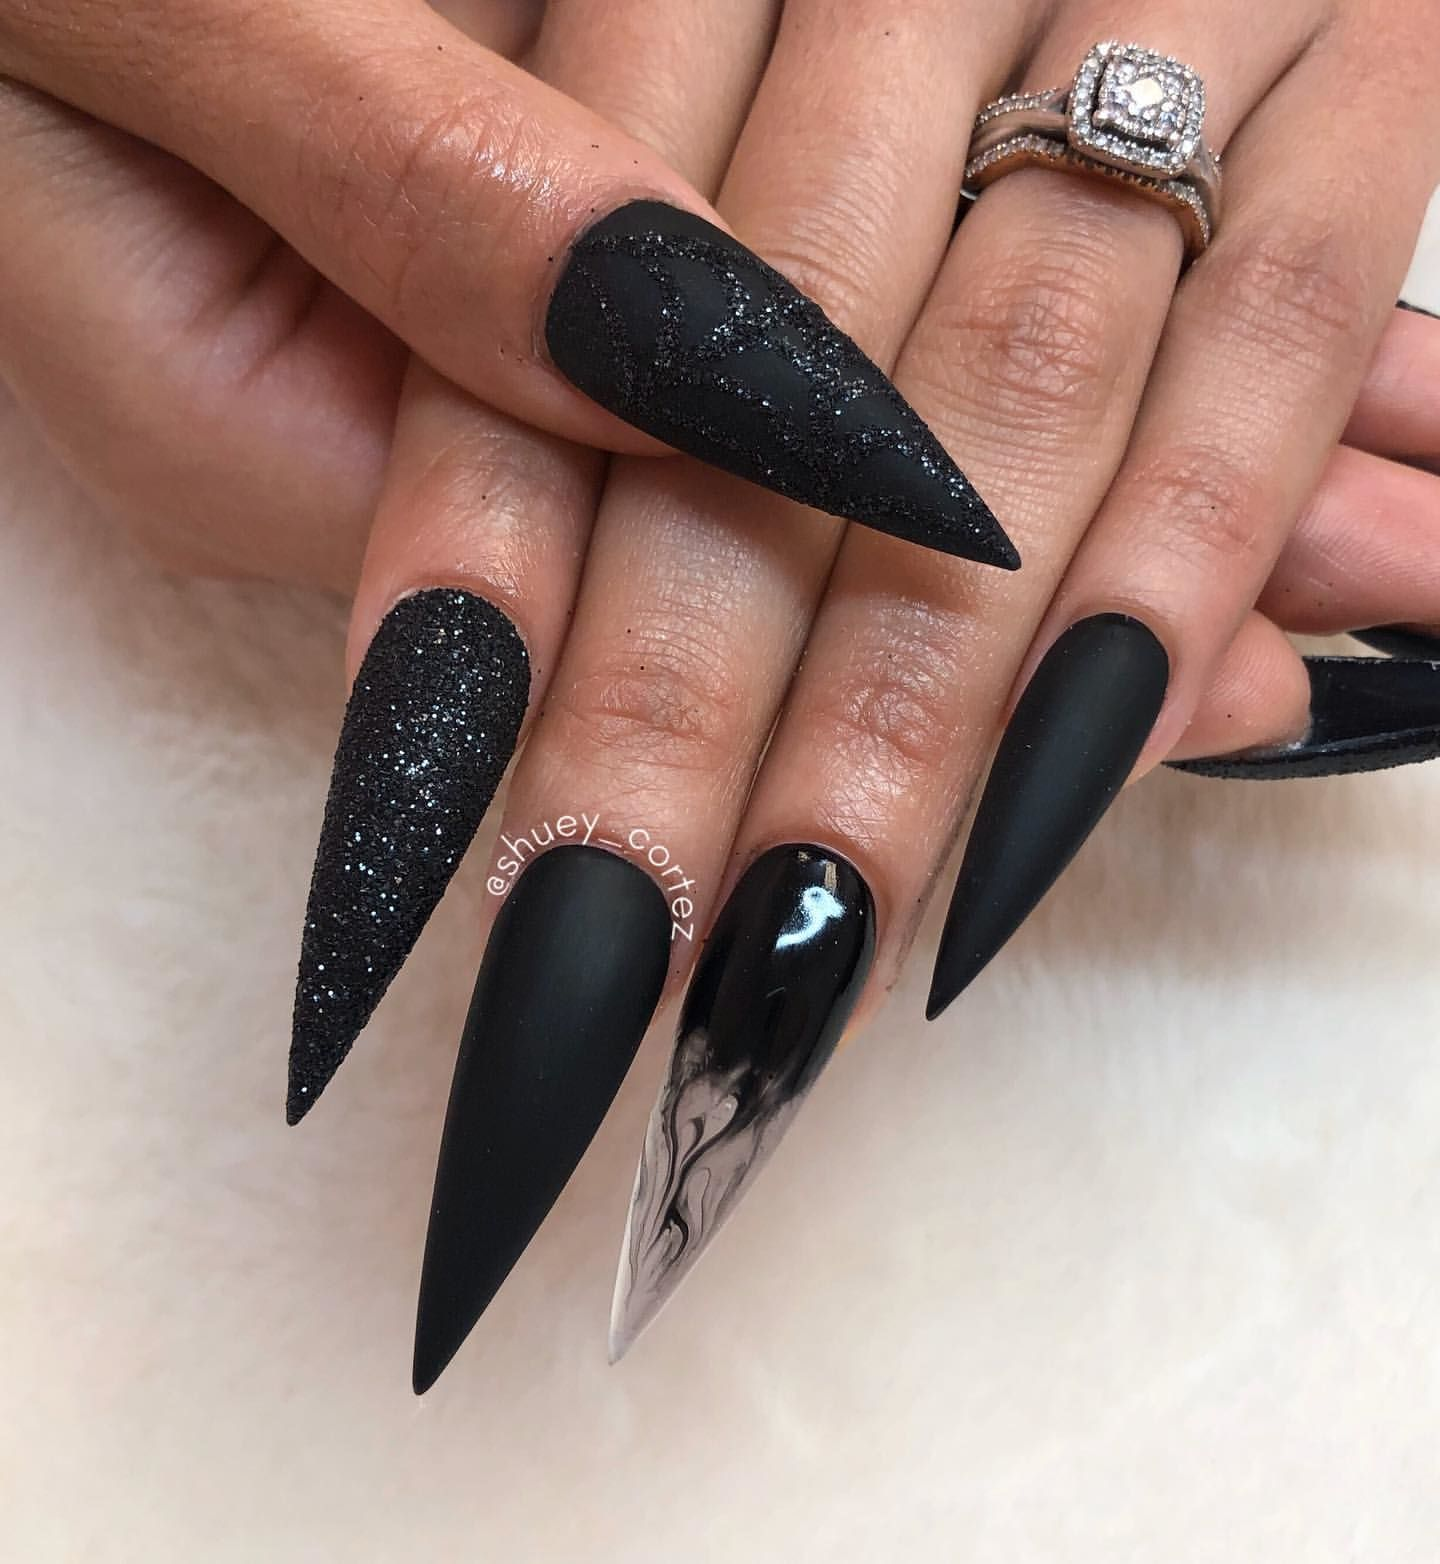 40 The Most Beautiful Long Nails Idea 2019 Halloween Acrylic Nails Halloween Nails Pointed Nails